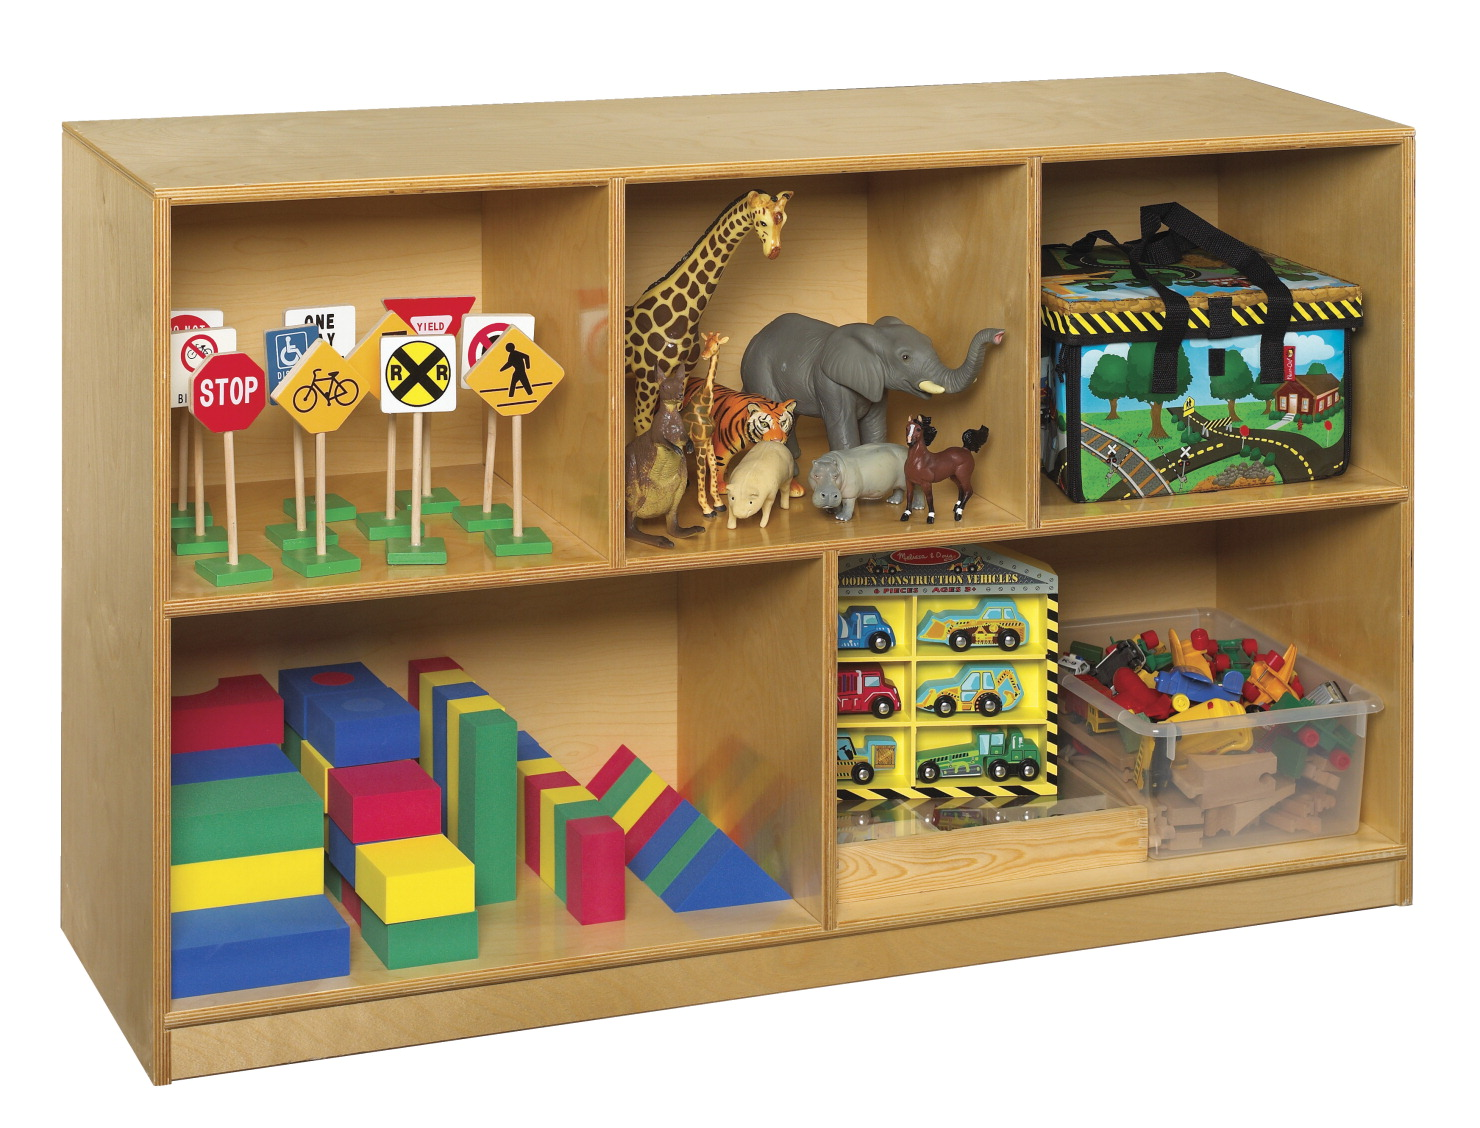 Childcraft Toy and Block Mobile Shelf, 5 Compartments, 47-3/4 x 14-1/4 x 30 Inches